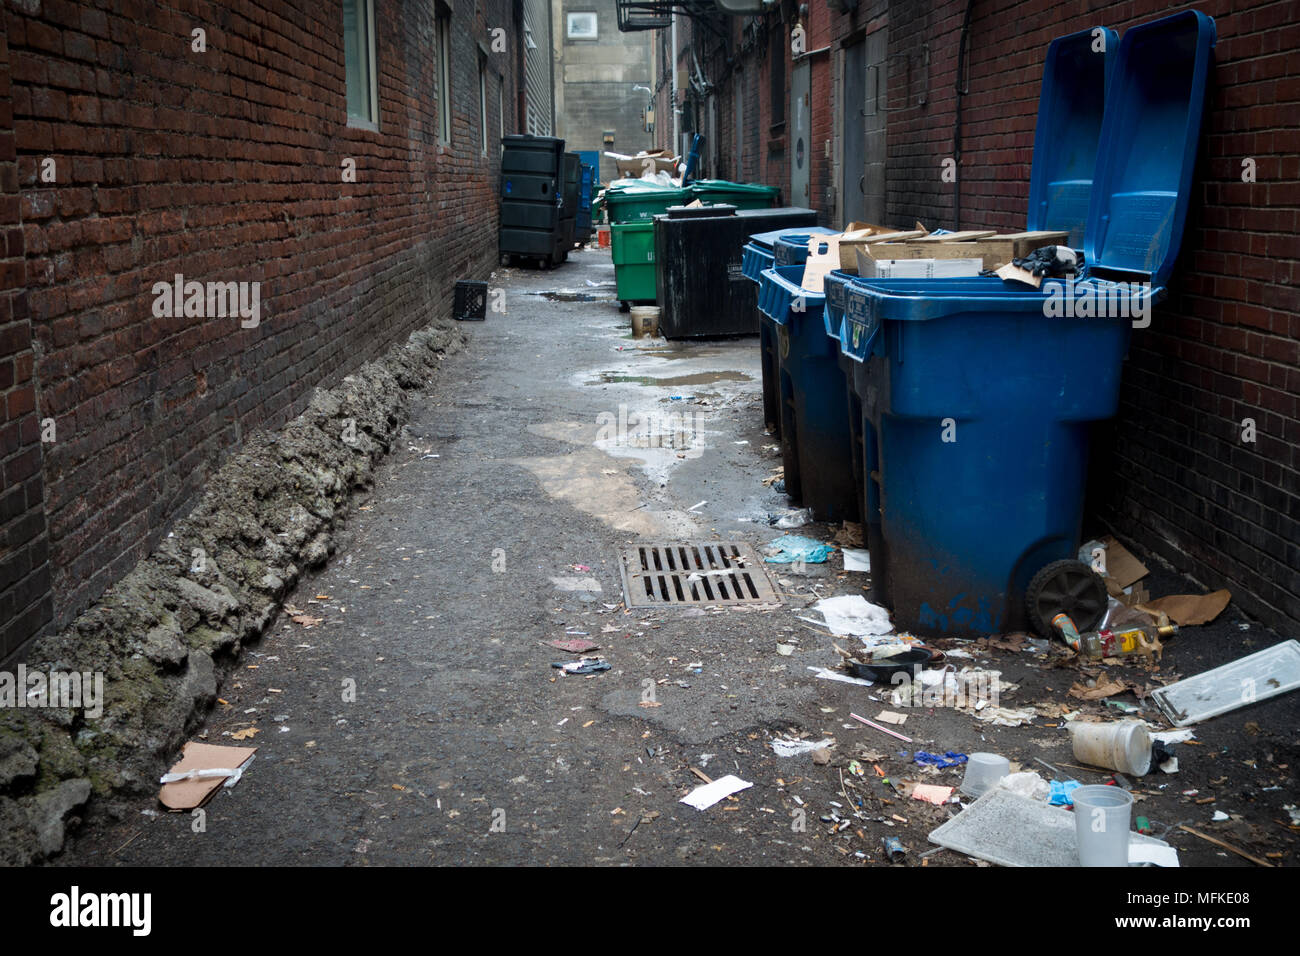 Large, overflowing garbage cans in a back alley in Pittsburgh, Pennsylvania, USA - Stock Image